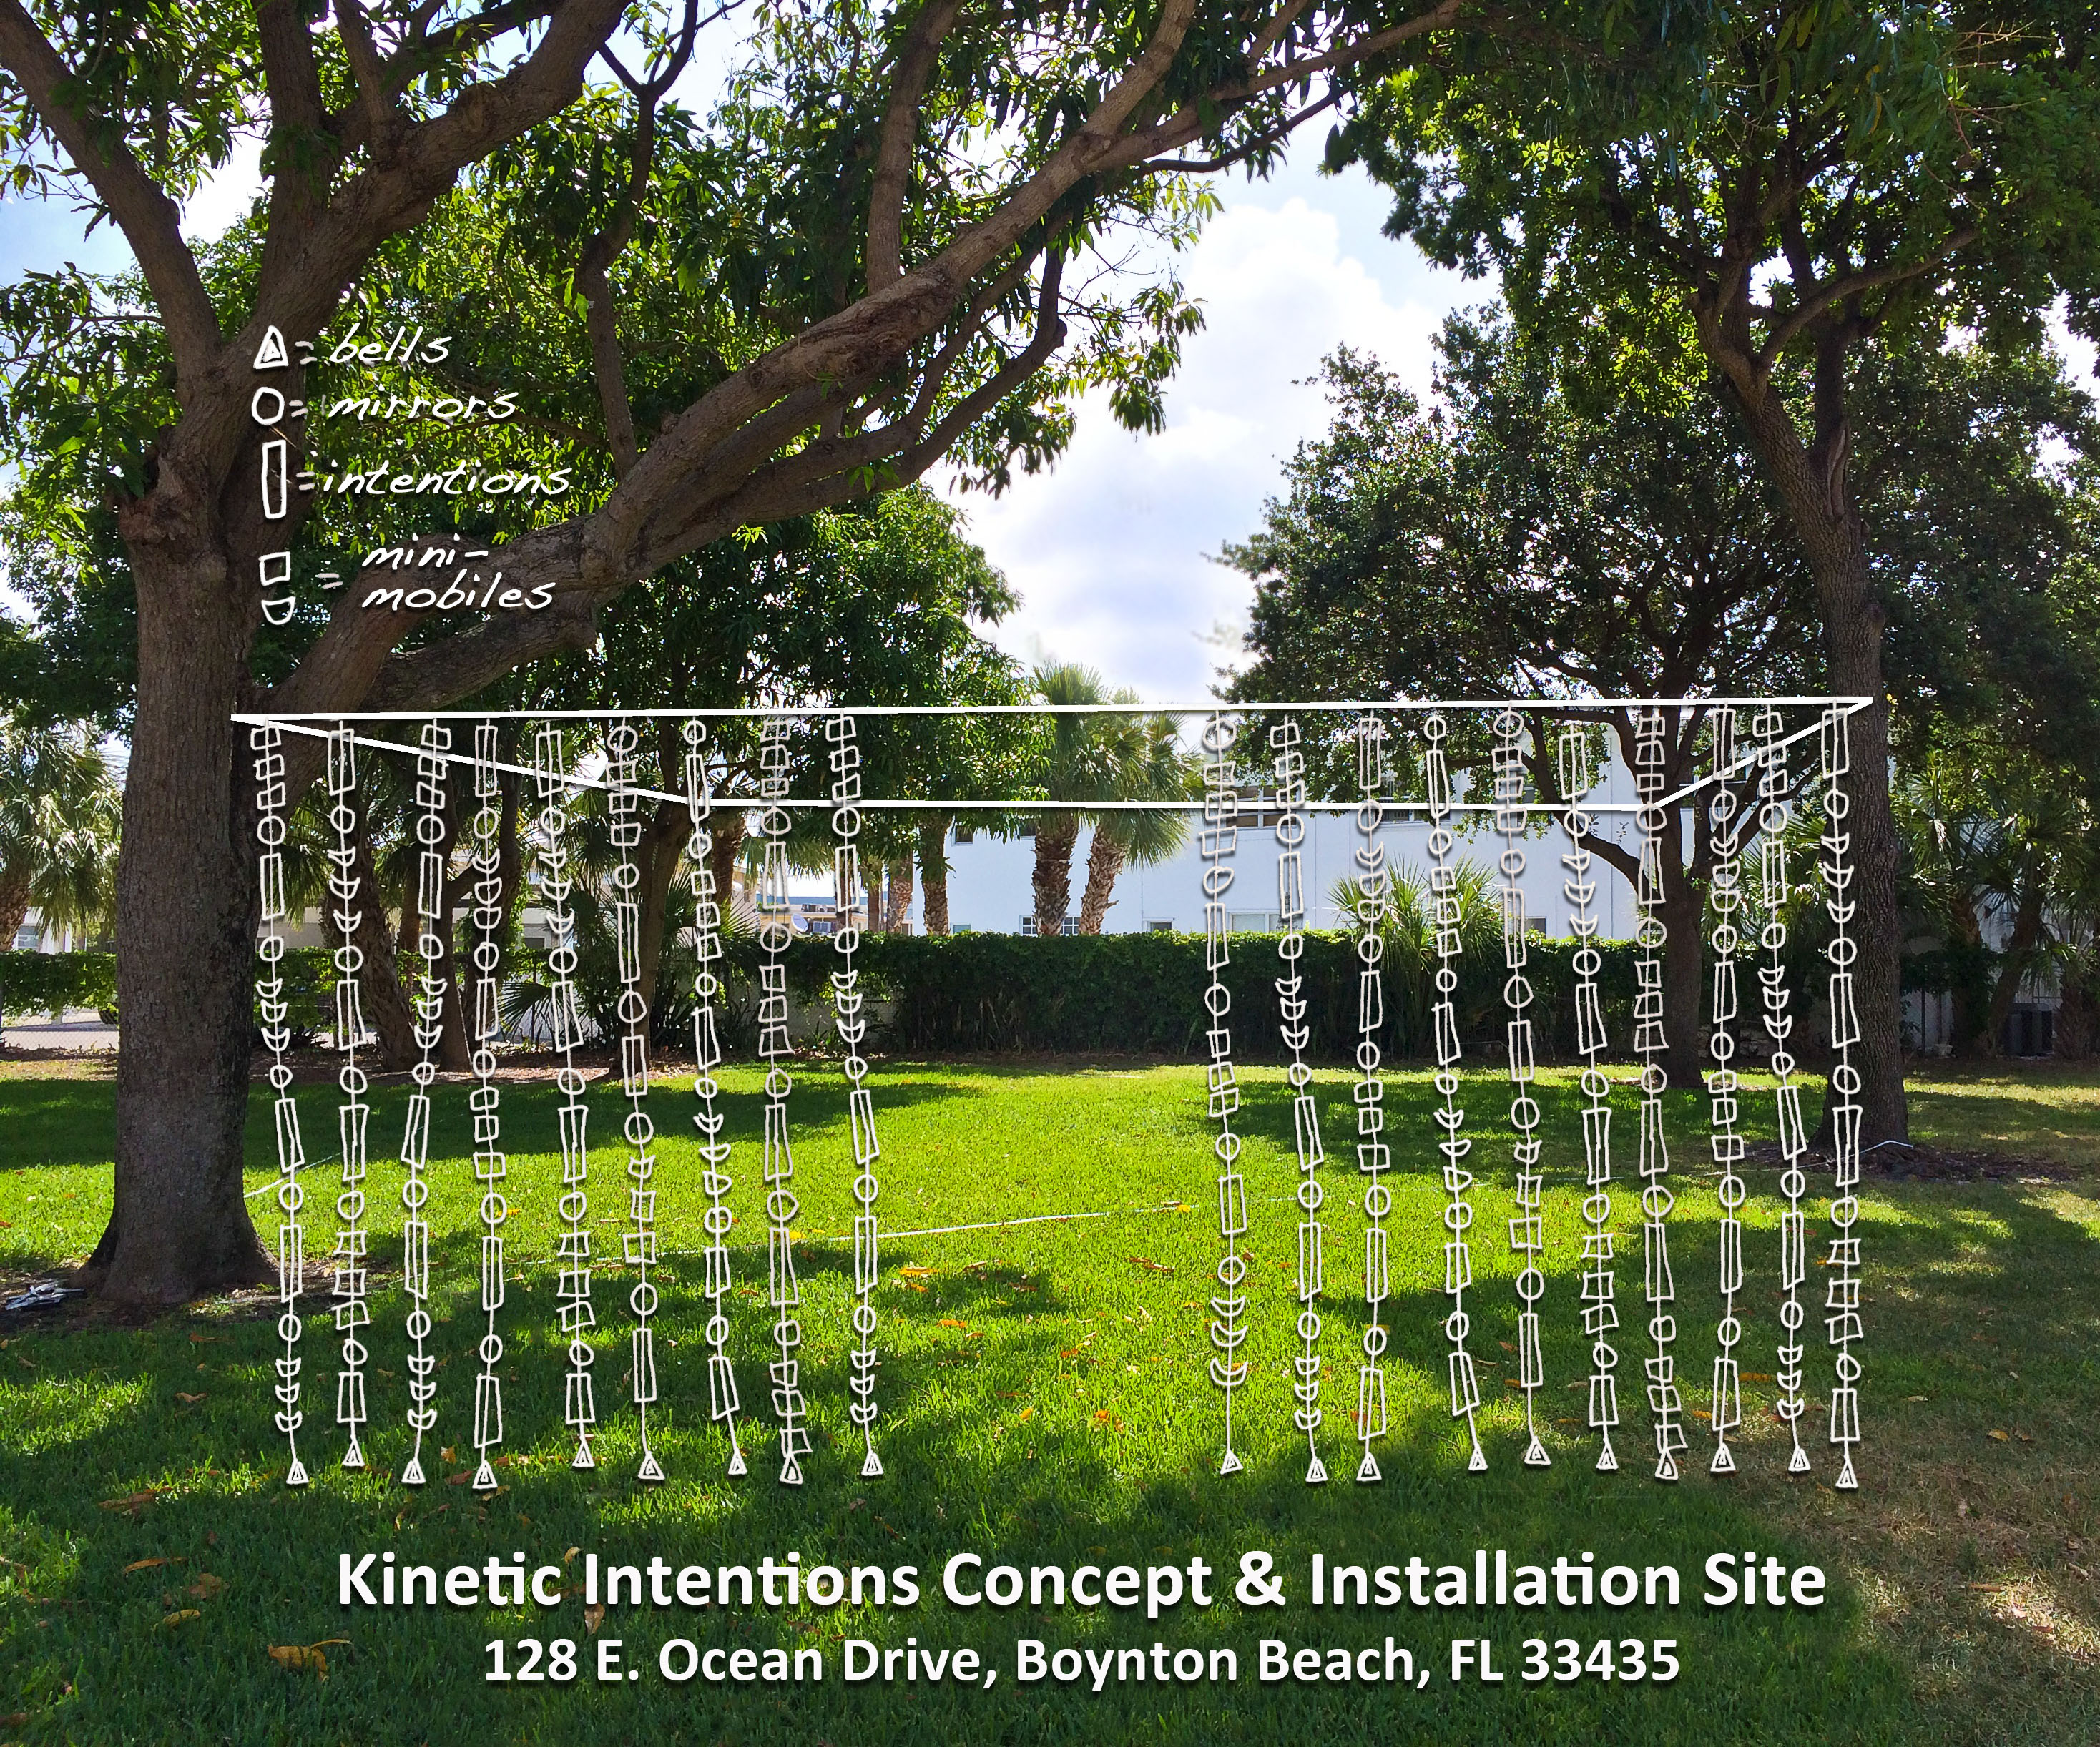 International Kinetic Art Exhibit and Symposium | The Rickie Report